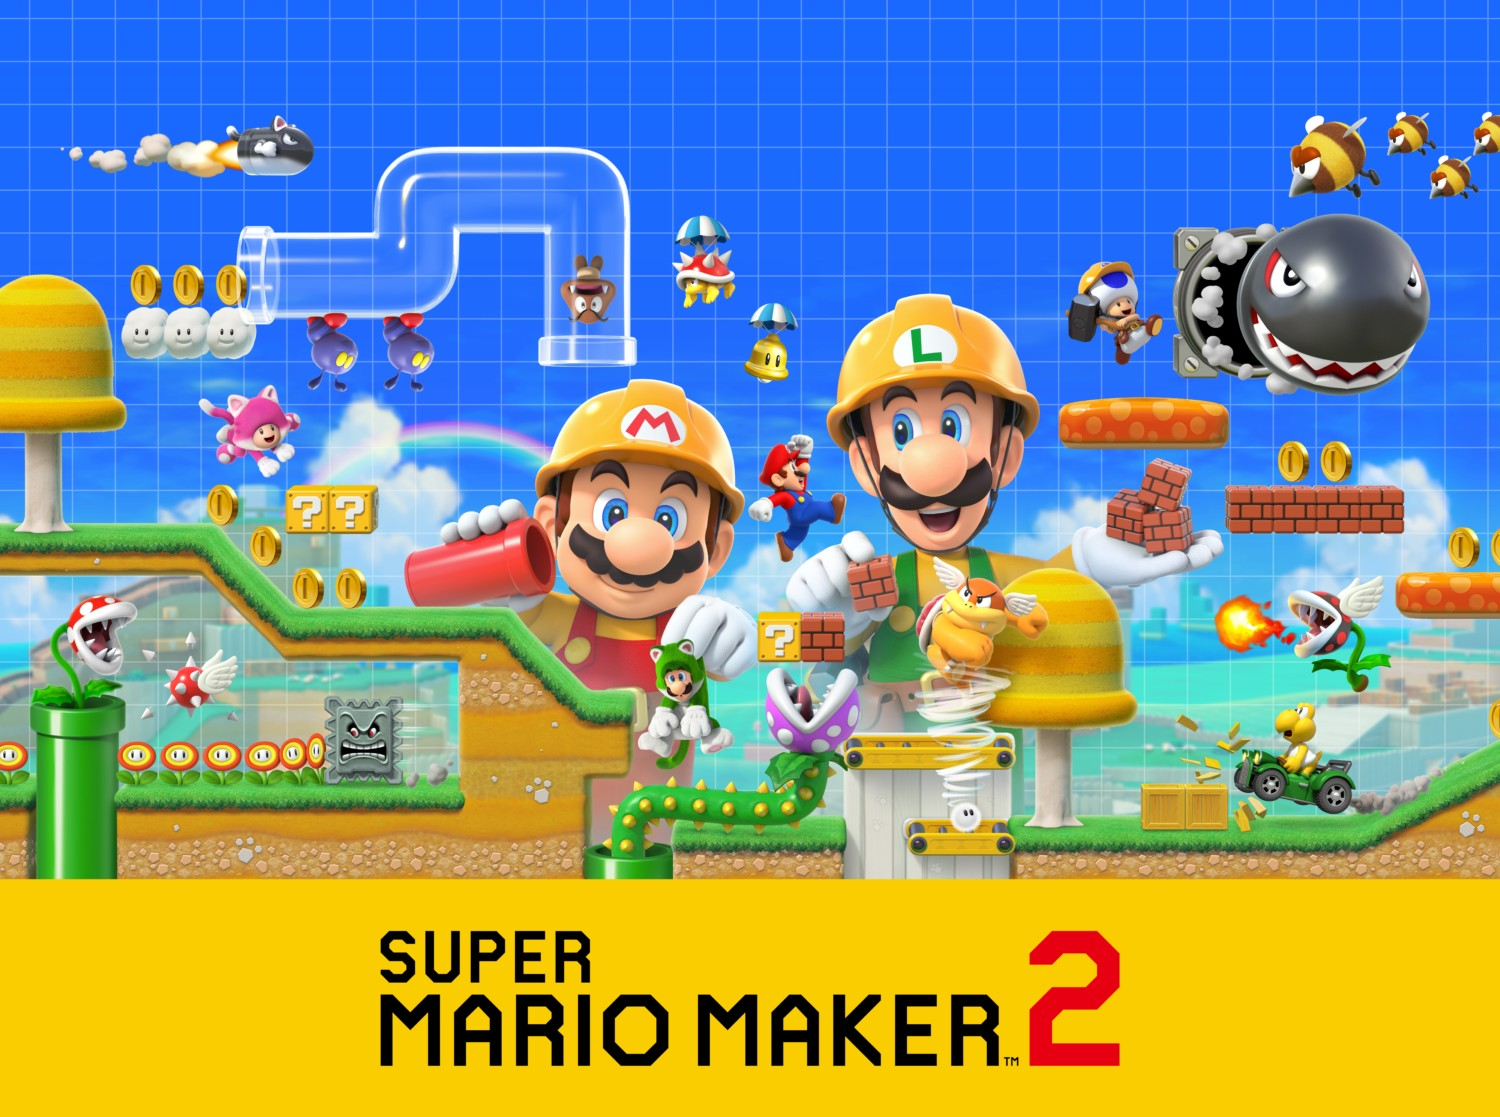 Super Mario Maker 2 Supports Up To Two Players Nintendosoup